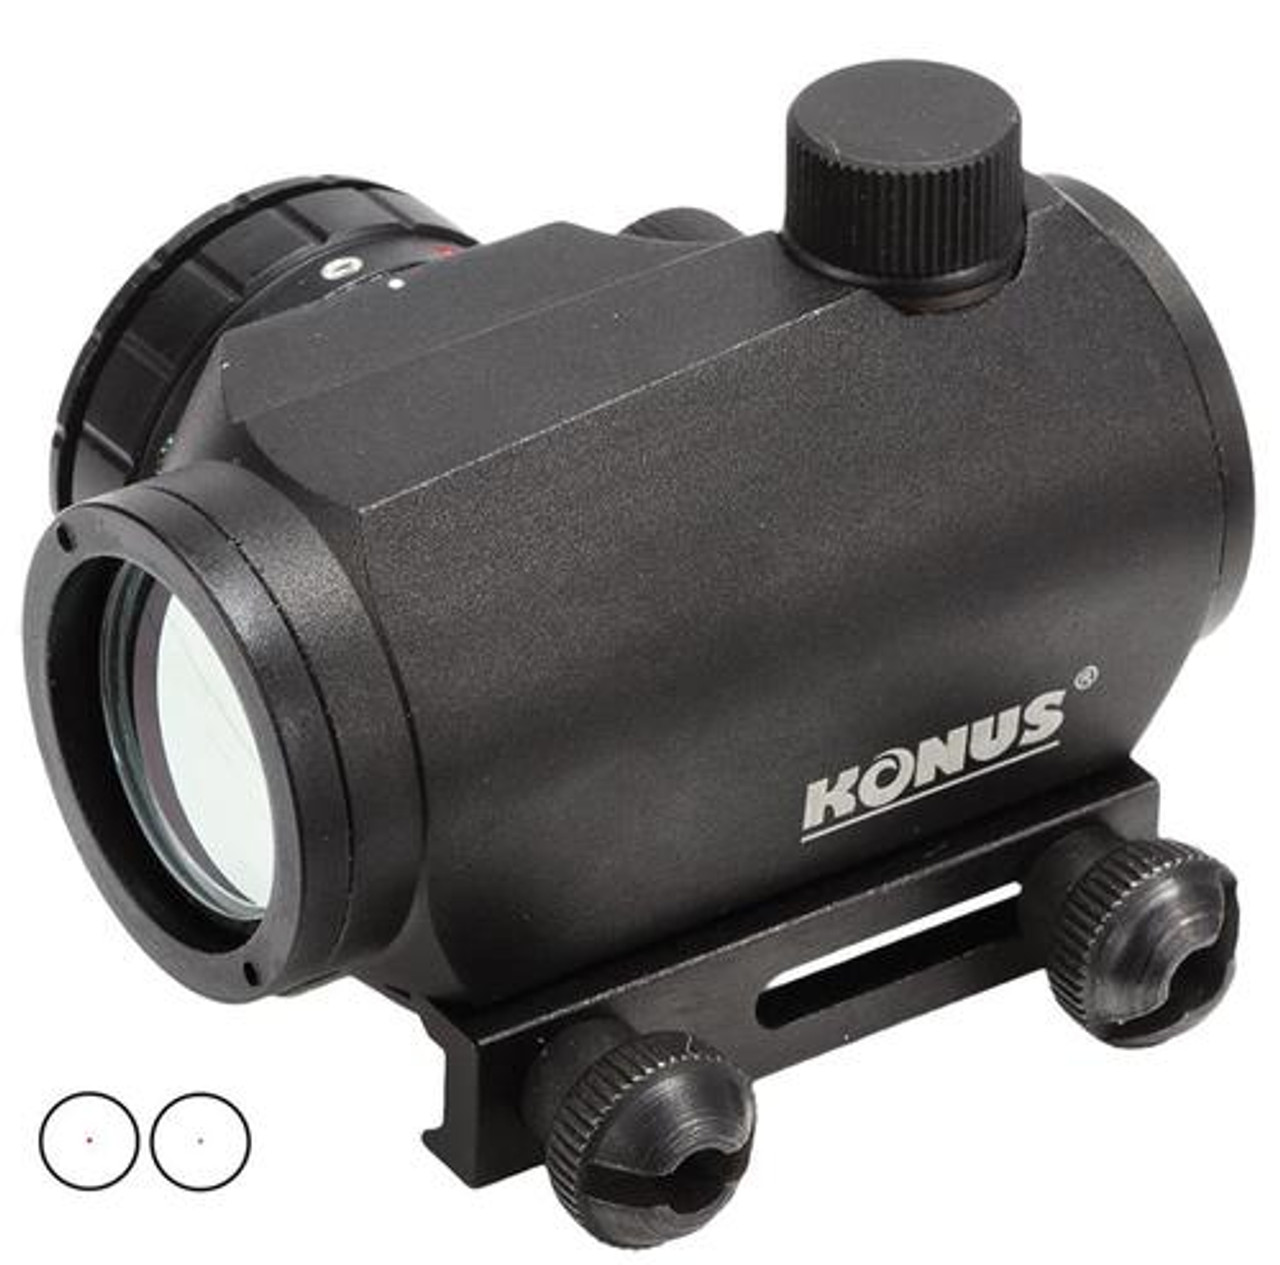 Konus SightPro Atomic 2.0 Red-Green Dot Sight All Caliber Rifle,Shotgun,Pistol